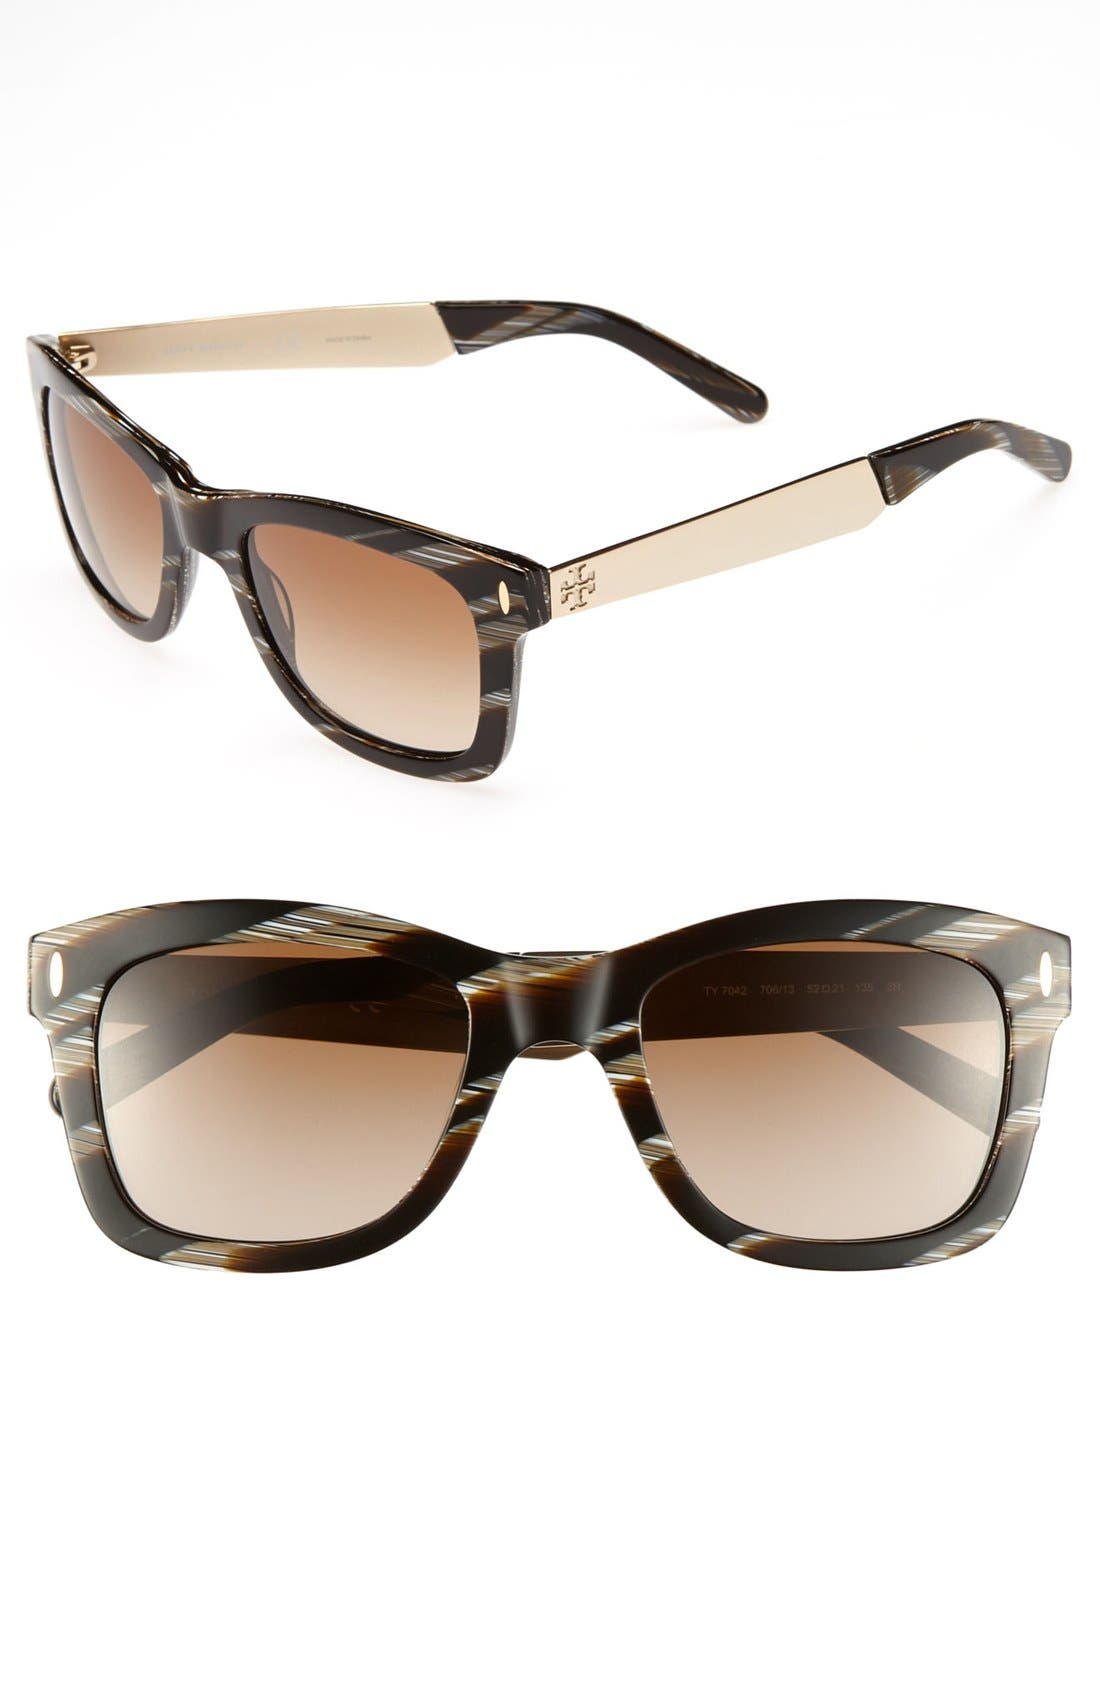 Main Image - Tory Burch 52mm Sunglasses (Online Only)